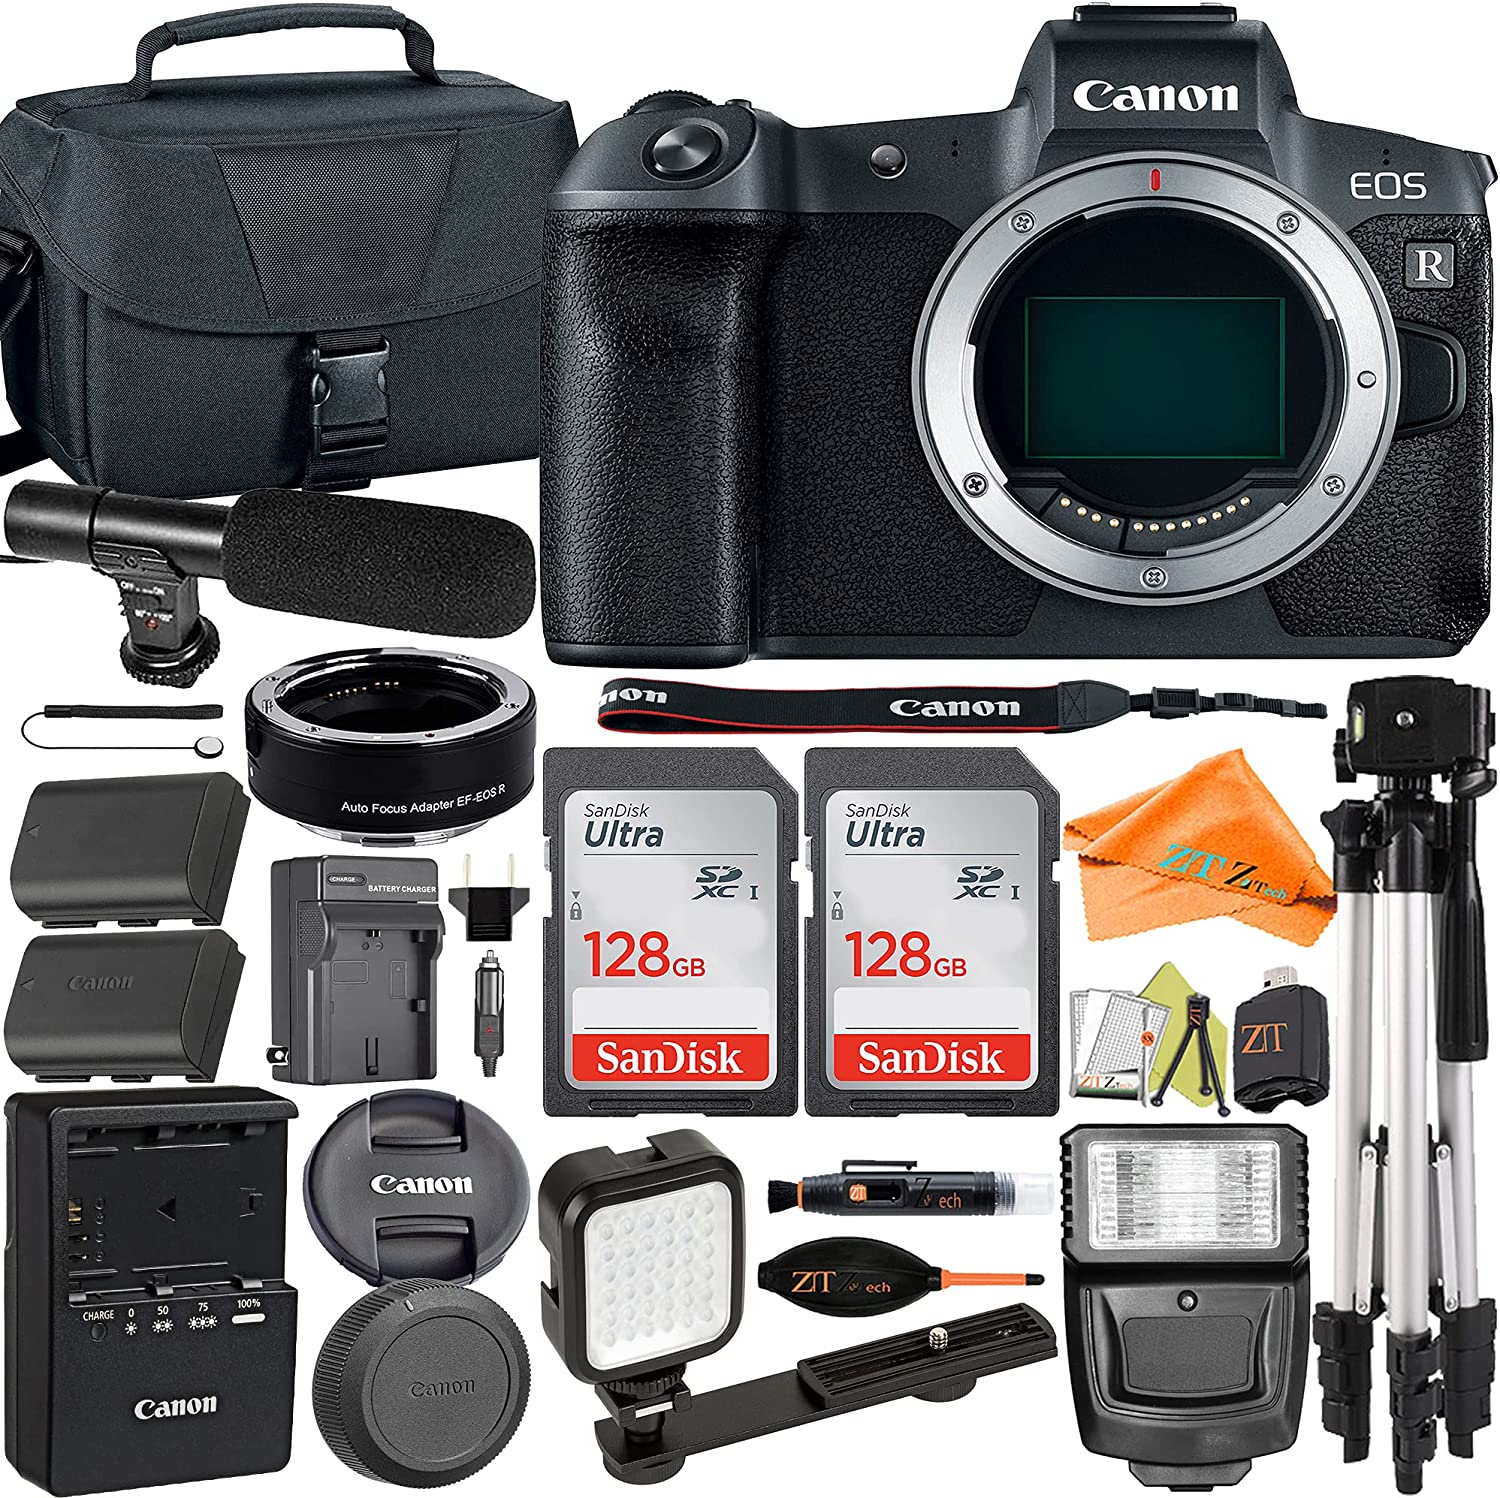 Canon EOS R Mirrorless Digital Max 68% OFF Camera Full 30.3MP Fr Body Limited price sale Only